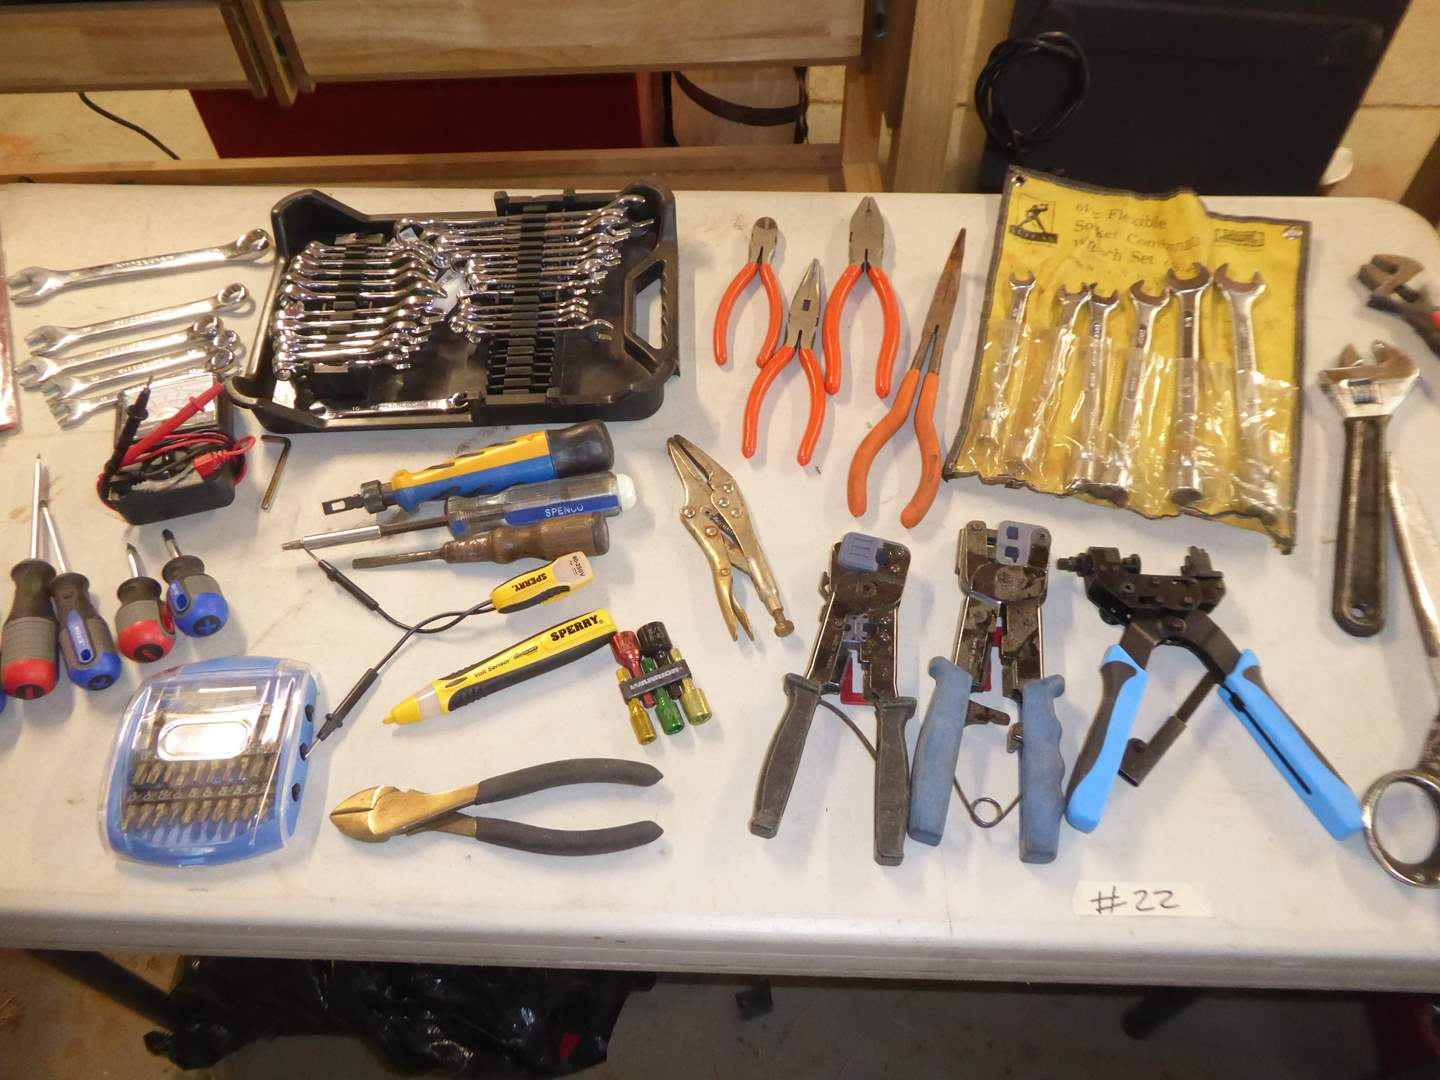 Lot # 22 -Wrenches, Screwdrivers, Phone Plug Pliers & More